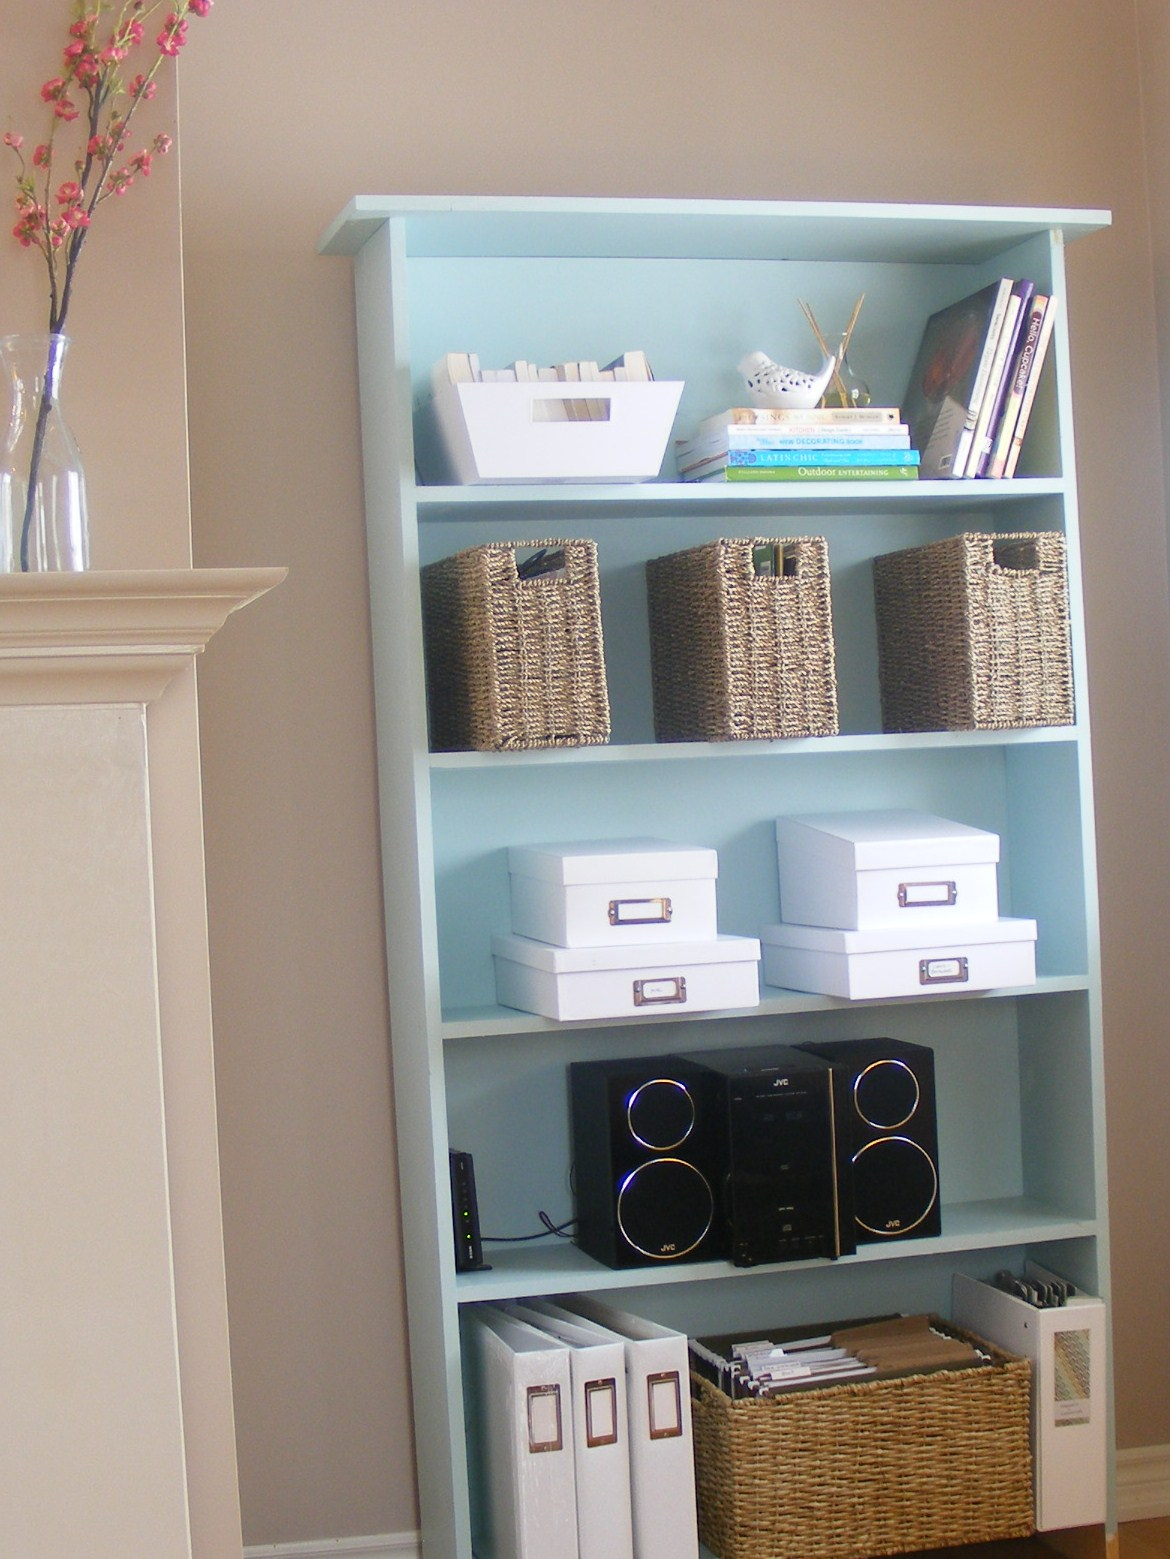 Living Room With Bookshelf: {Home Staging 101} Part 2: My Living Room